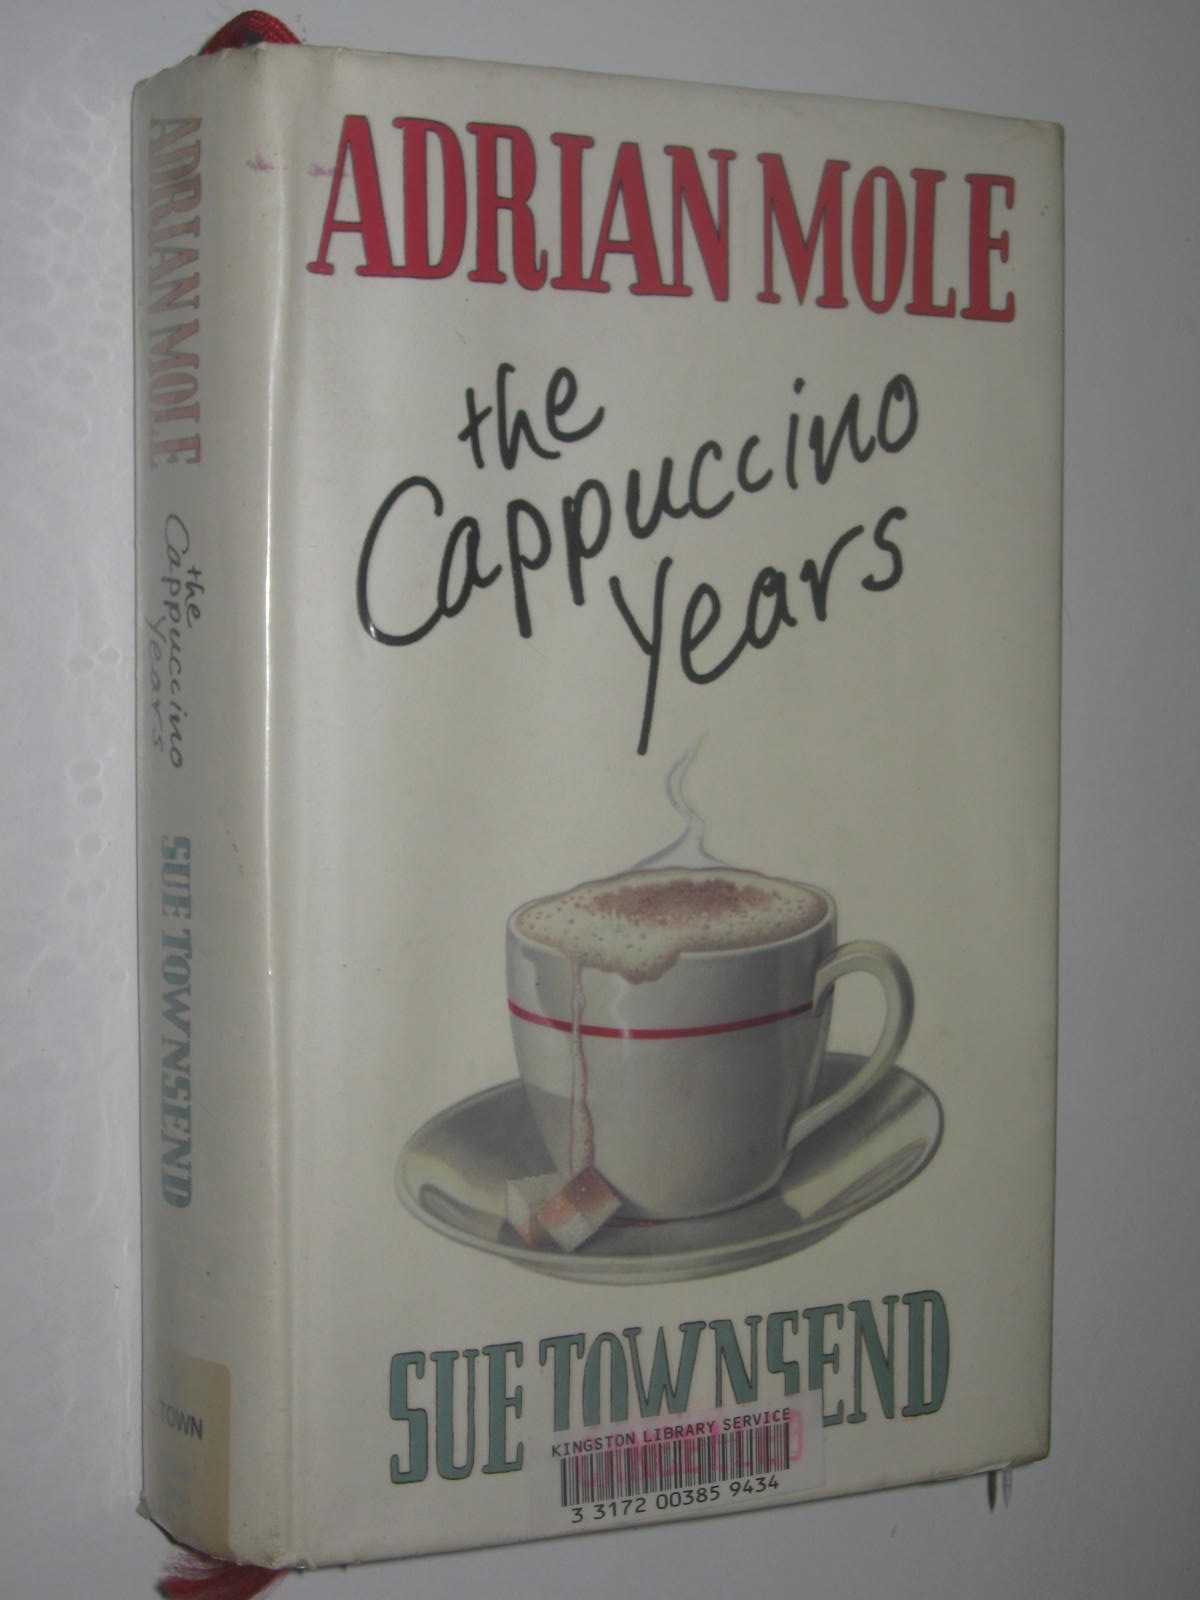 Image for The Cappuccino Years - Adrian Mole Series